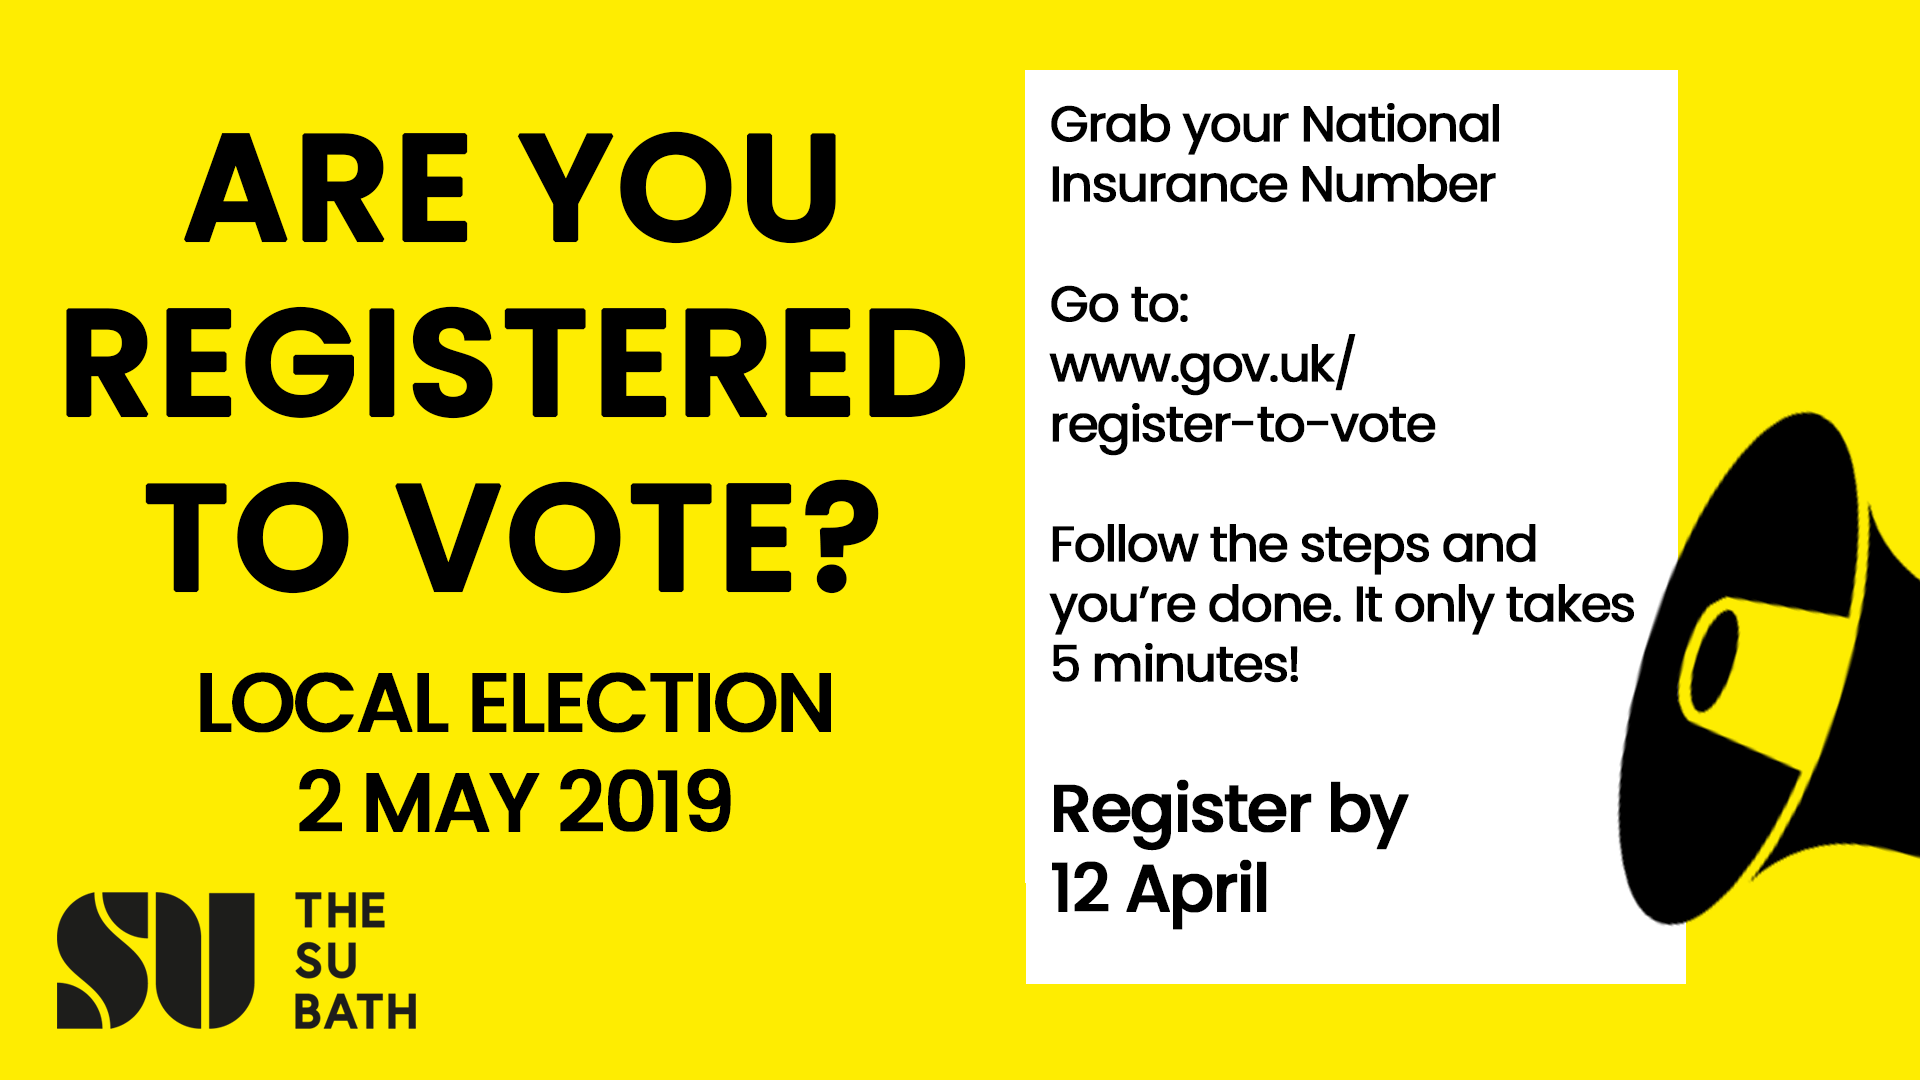 Are you registered to vote? Local Elections 2 May 2019. Grab your national insurance number, go to www.gov.uk/register-to-vote and follow the steps and you are done. It only takes 5 minutes! Register by 12 April.